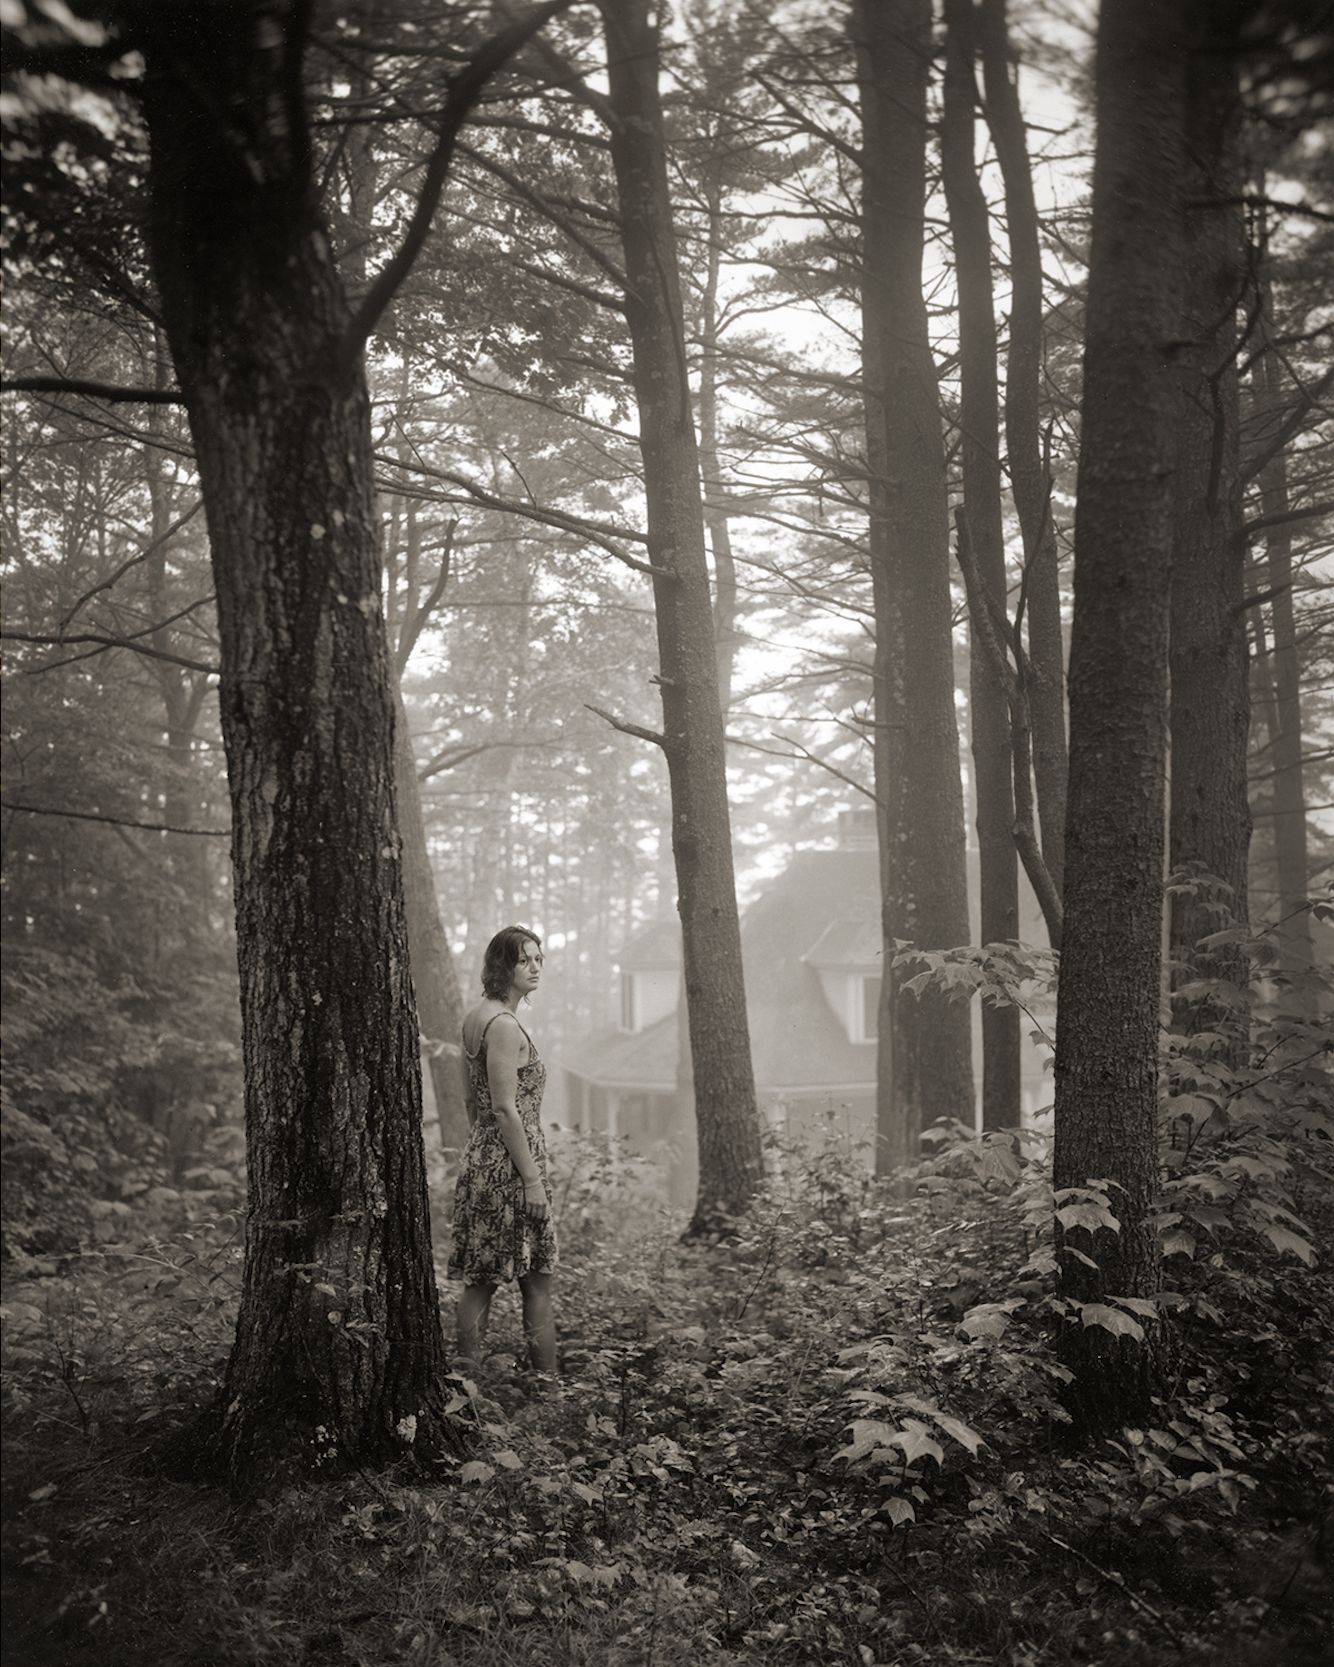 Sumner Wells Hatch. Untitled (Rebecca at Longfellow, 5:00 AM), 2013. From theseries Private Ground. Gelatin silver print. 20 x 16 in. (50.8 x 40.6 cm)